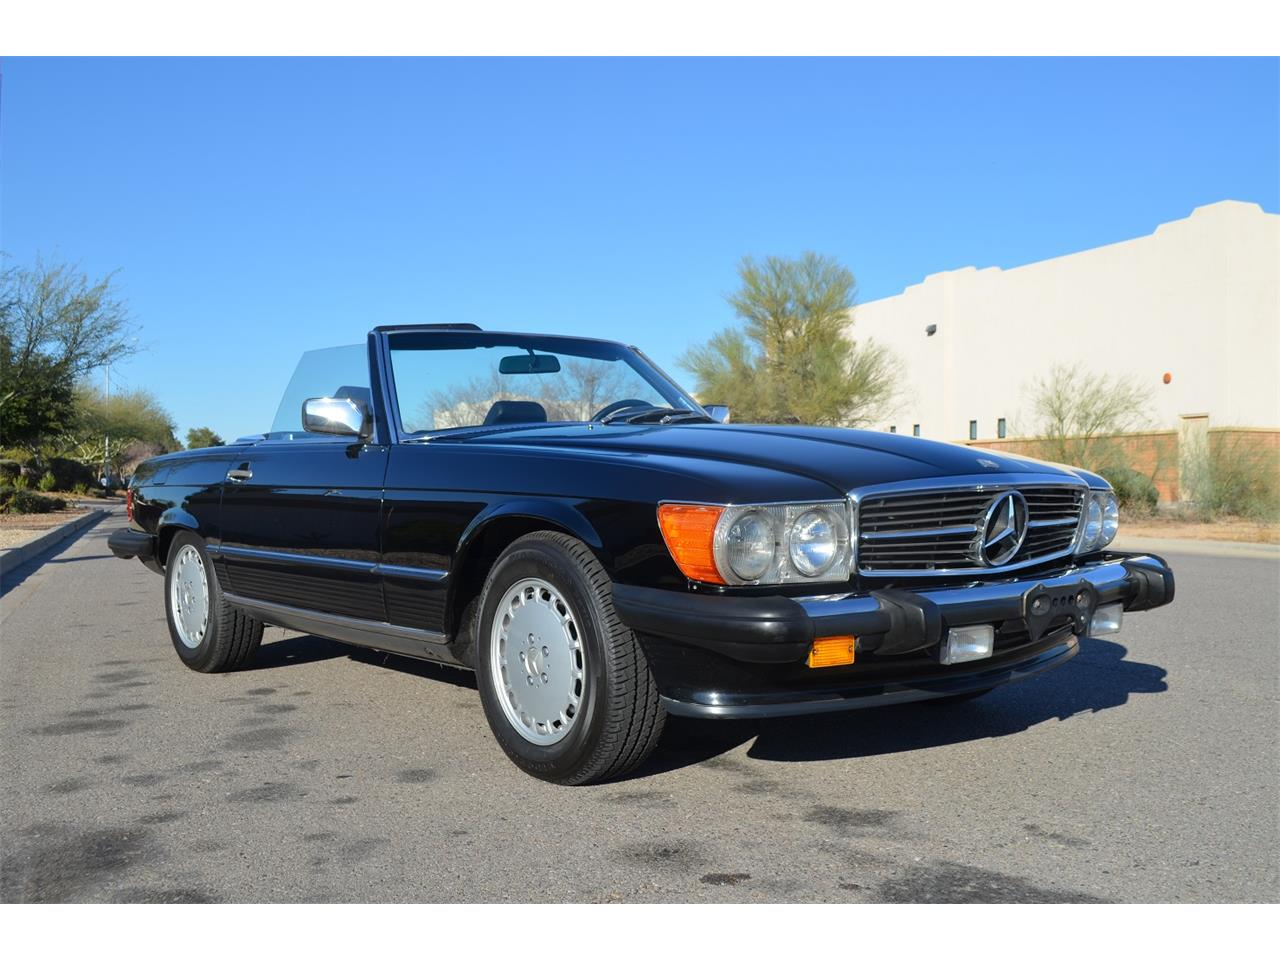 Large Picture of 1989 Mercedes-Benz 560SL located in Arizona Auction Vehicle Offered by Russo and Steele - MOEB